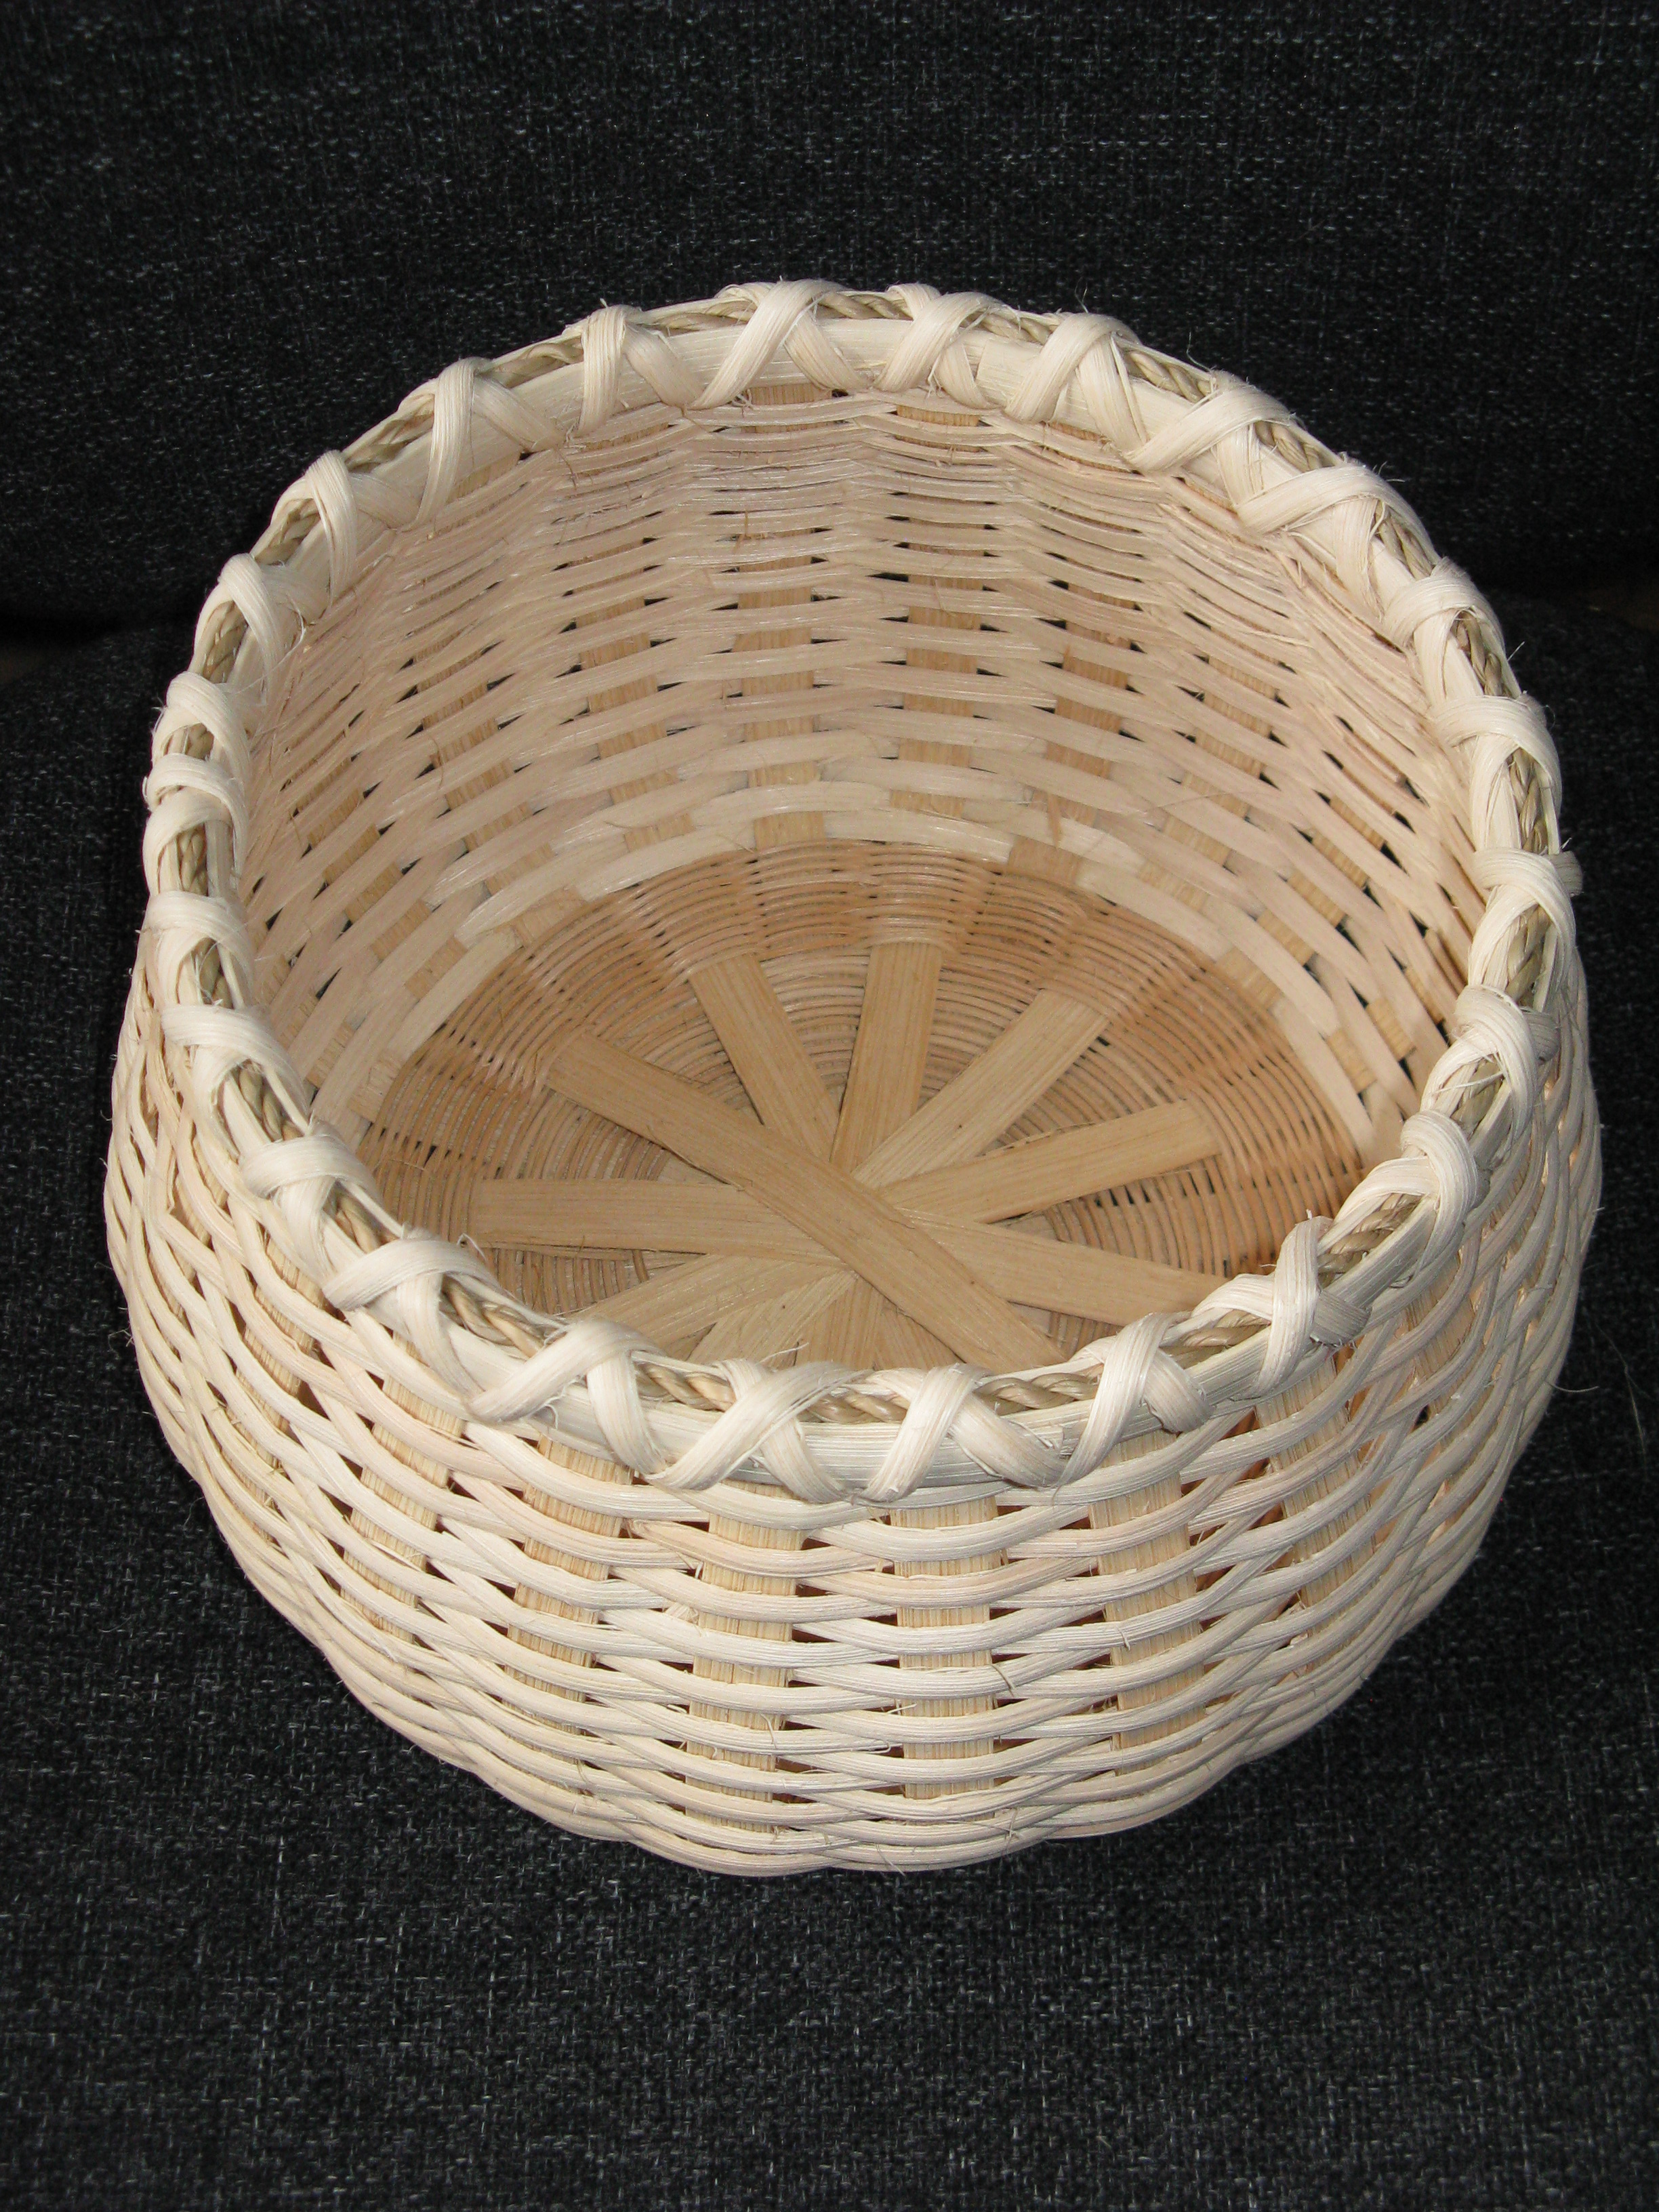 Cane Baskets Cane Baskets Sally Roach Basketry